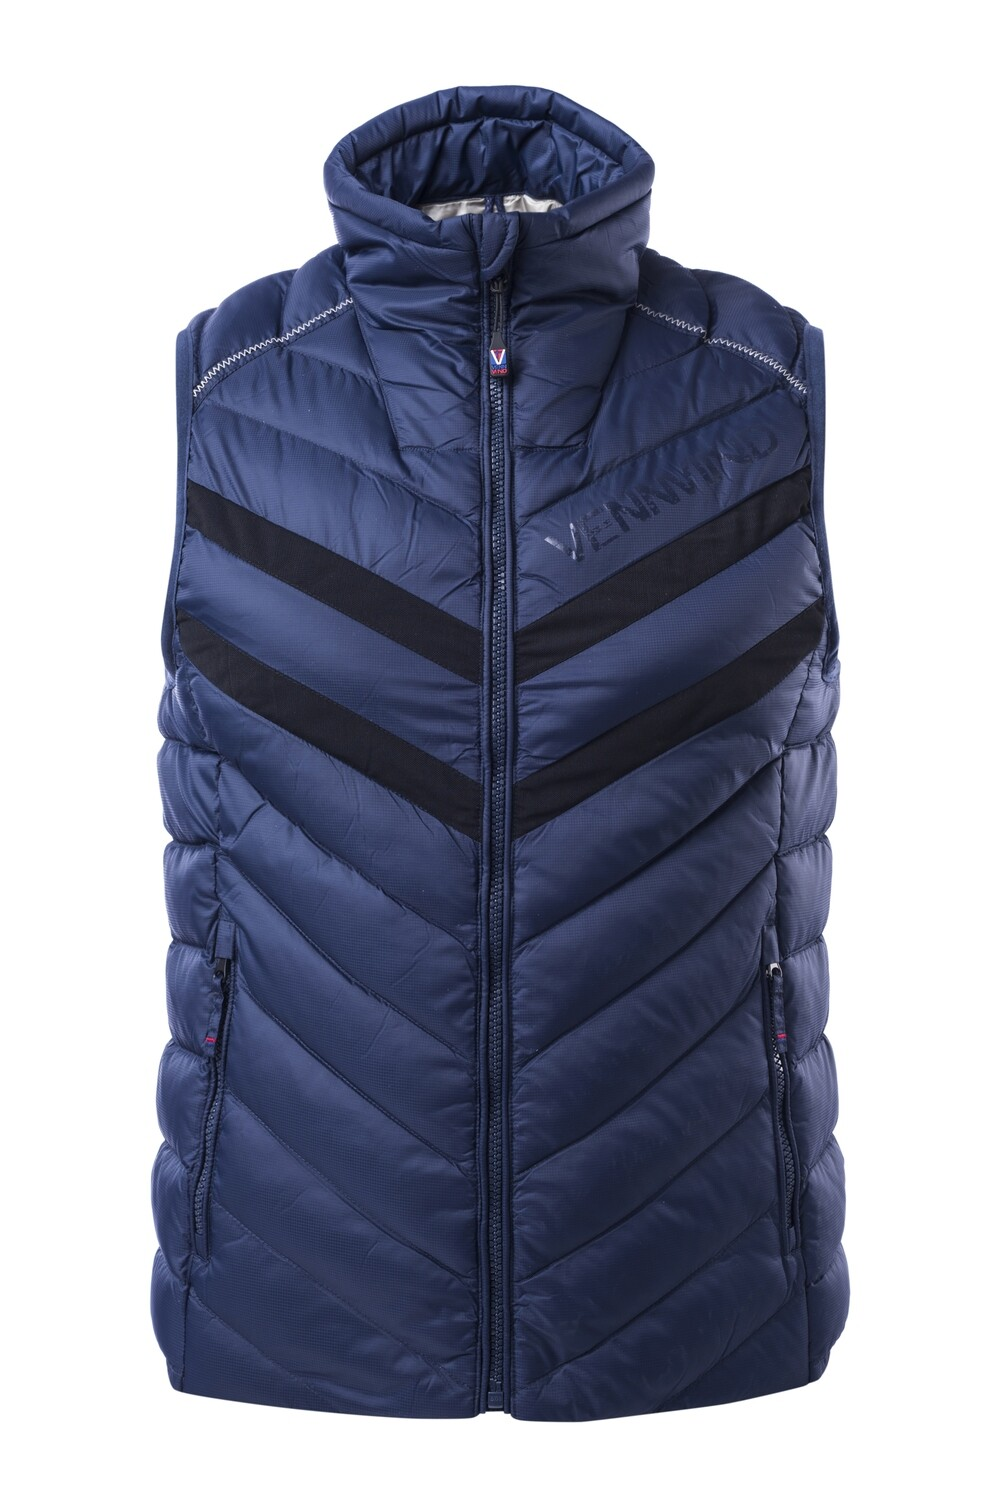 Gilet gefüttert Dress Blue Herren